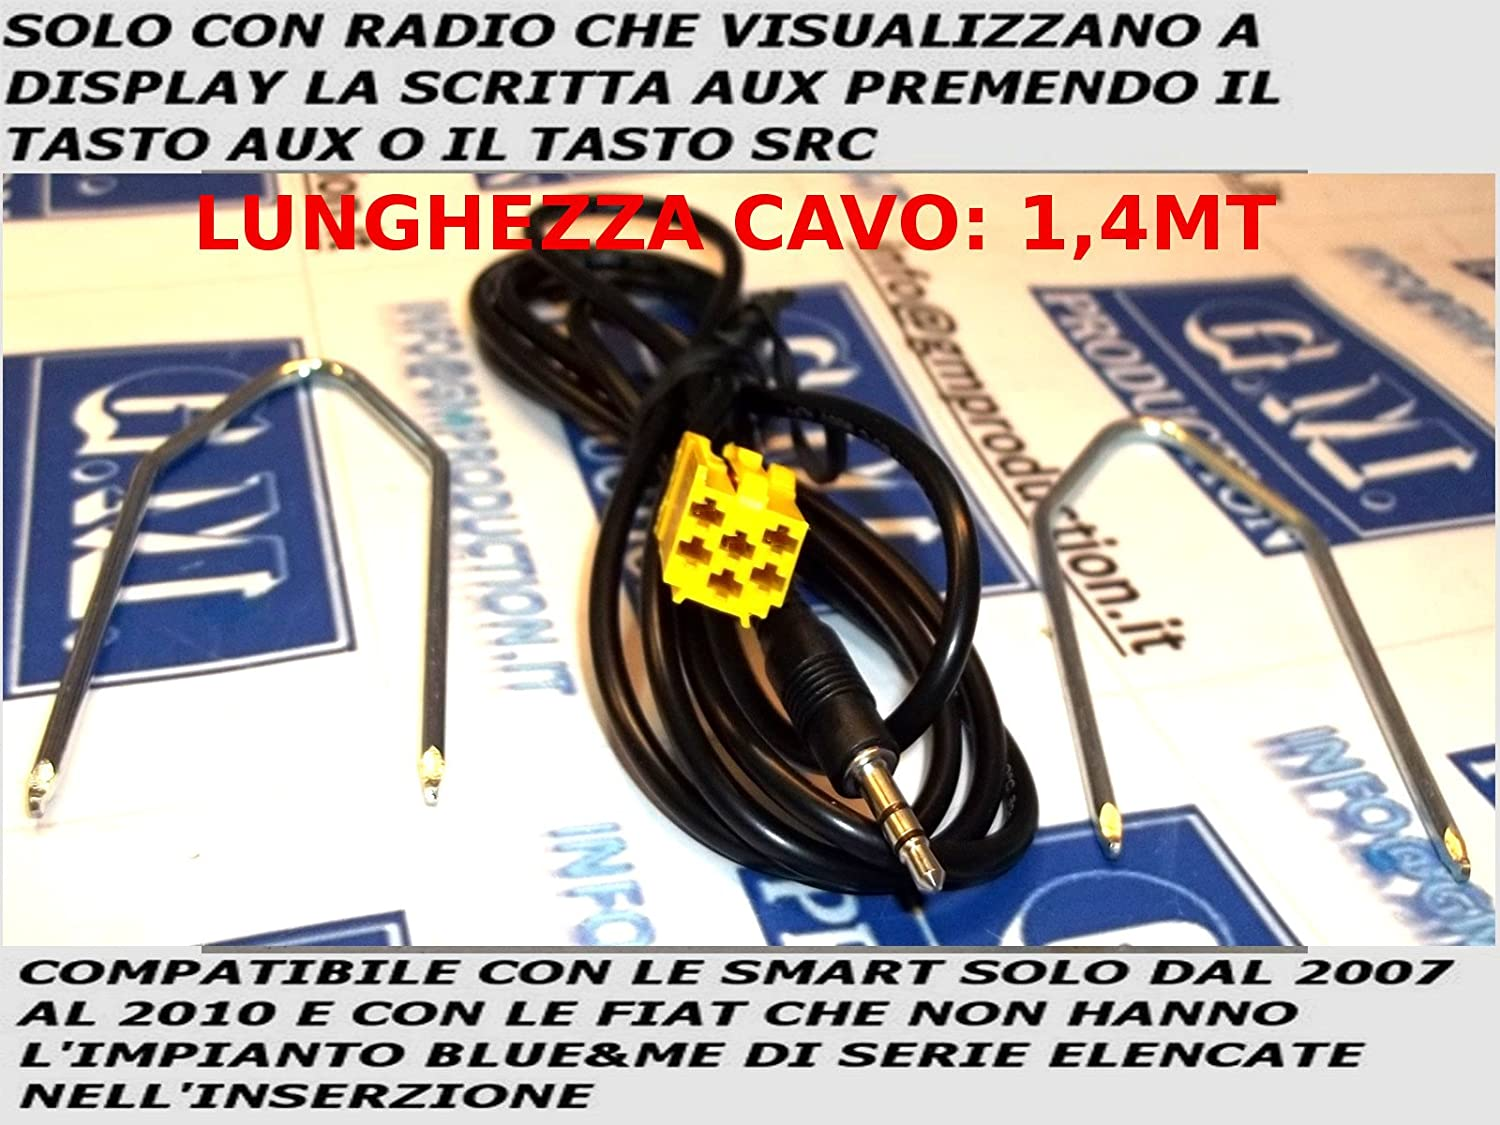 G.M. Production - KIT191G - Cavo Autoradio di Serie Solo con Aux a Display Disponibile con Chiavi Sgancio Radio a Corredo 191G KIT